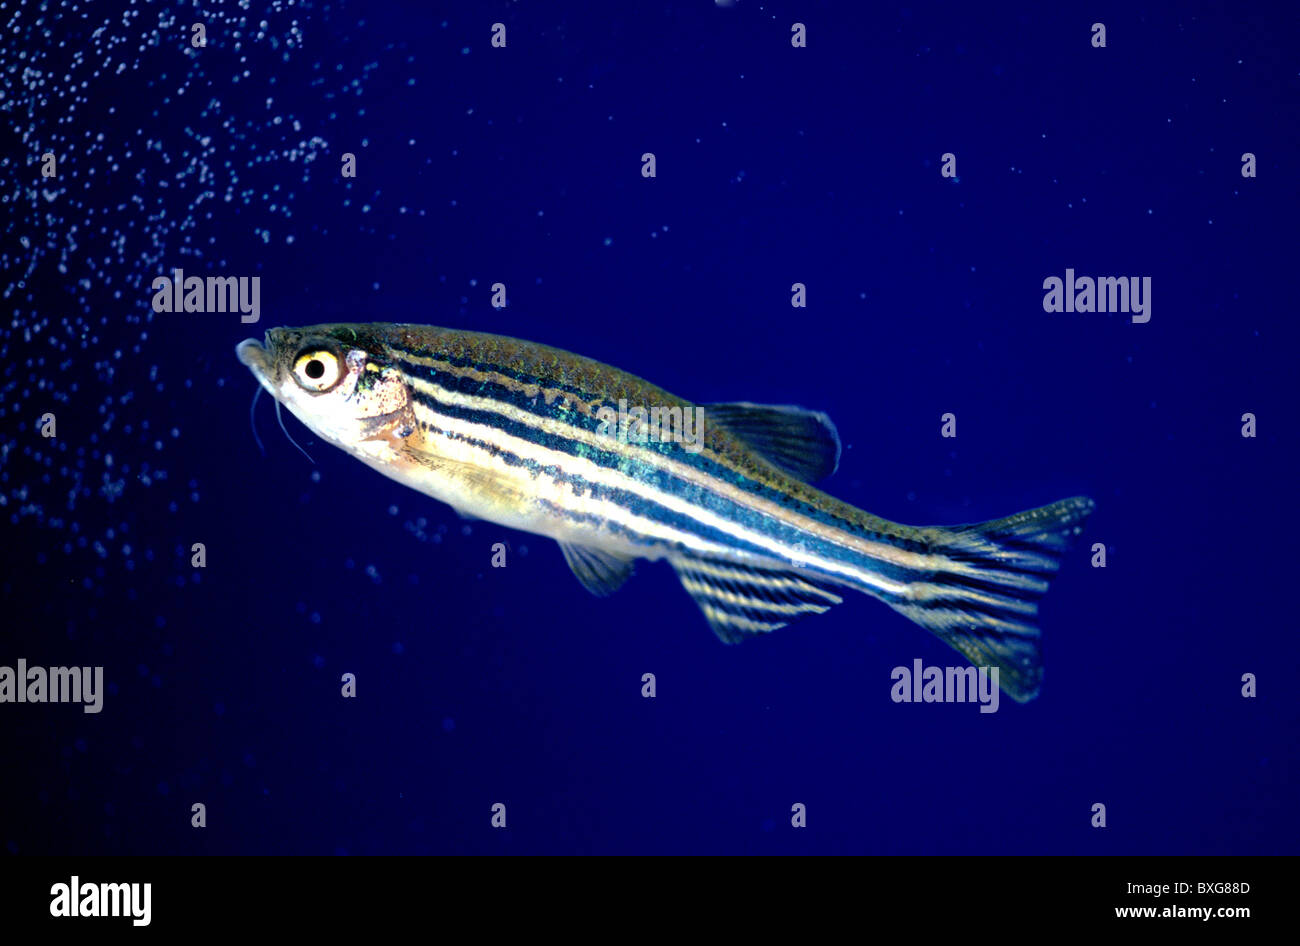 Zebrafish, aquarium Stock Photo